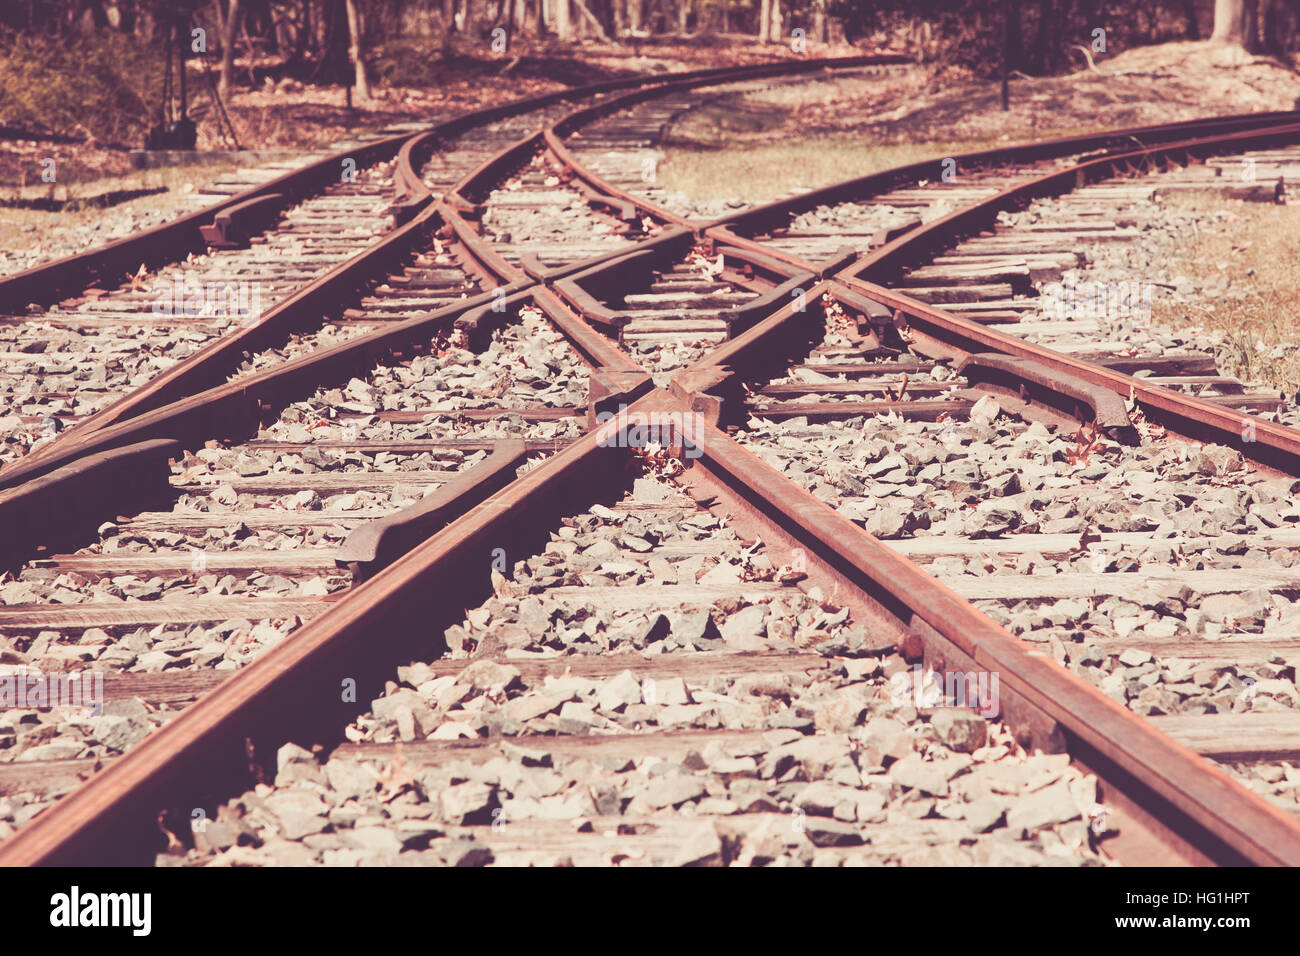 A view of a junction on old railroad tracks - Stock Image